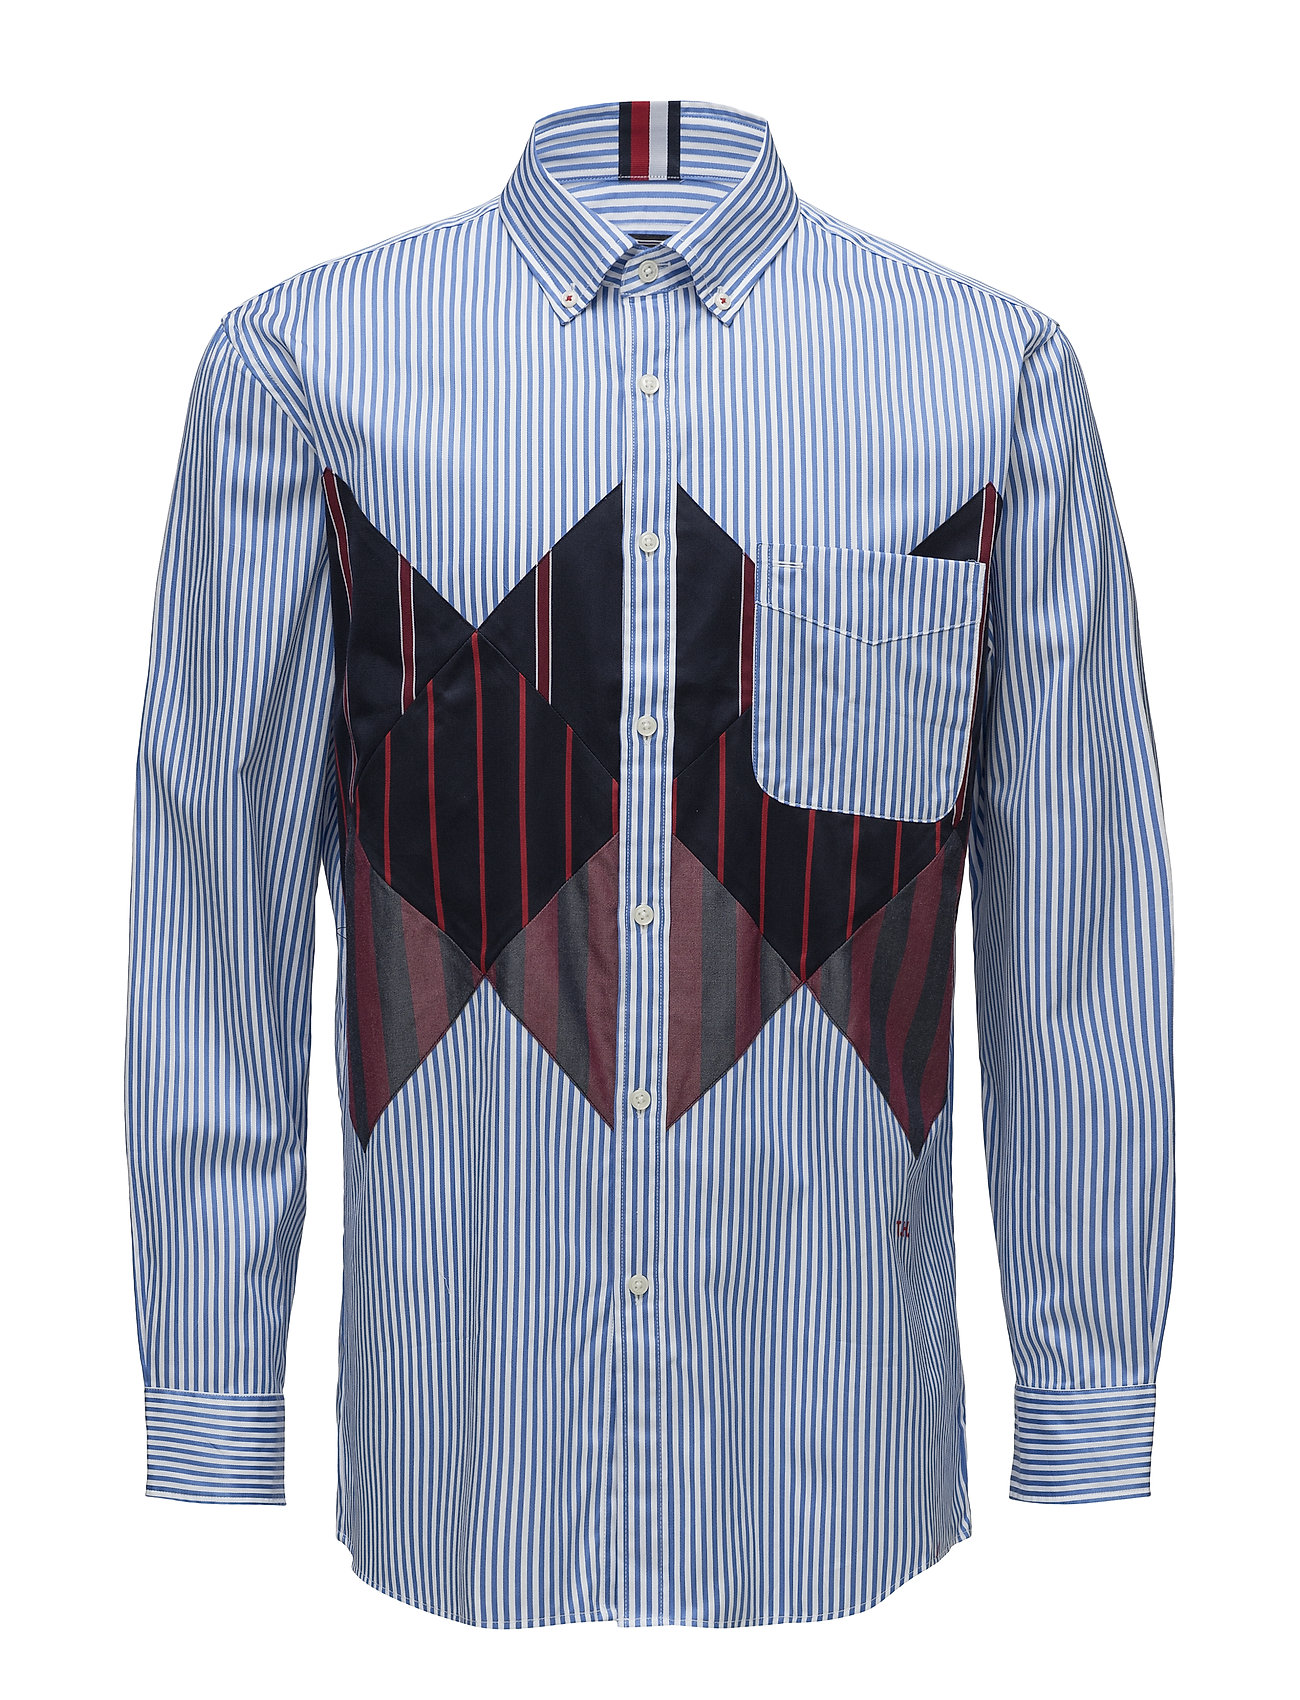 Hilfiger Collection HCM PATCH ARGYLE SHIRT - REGATTA / BW / MULTI